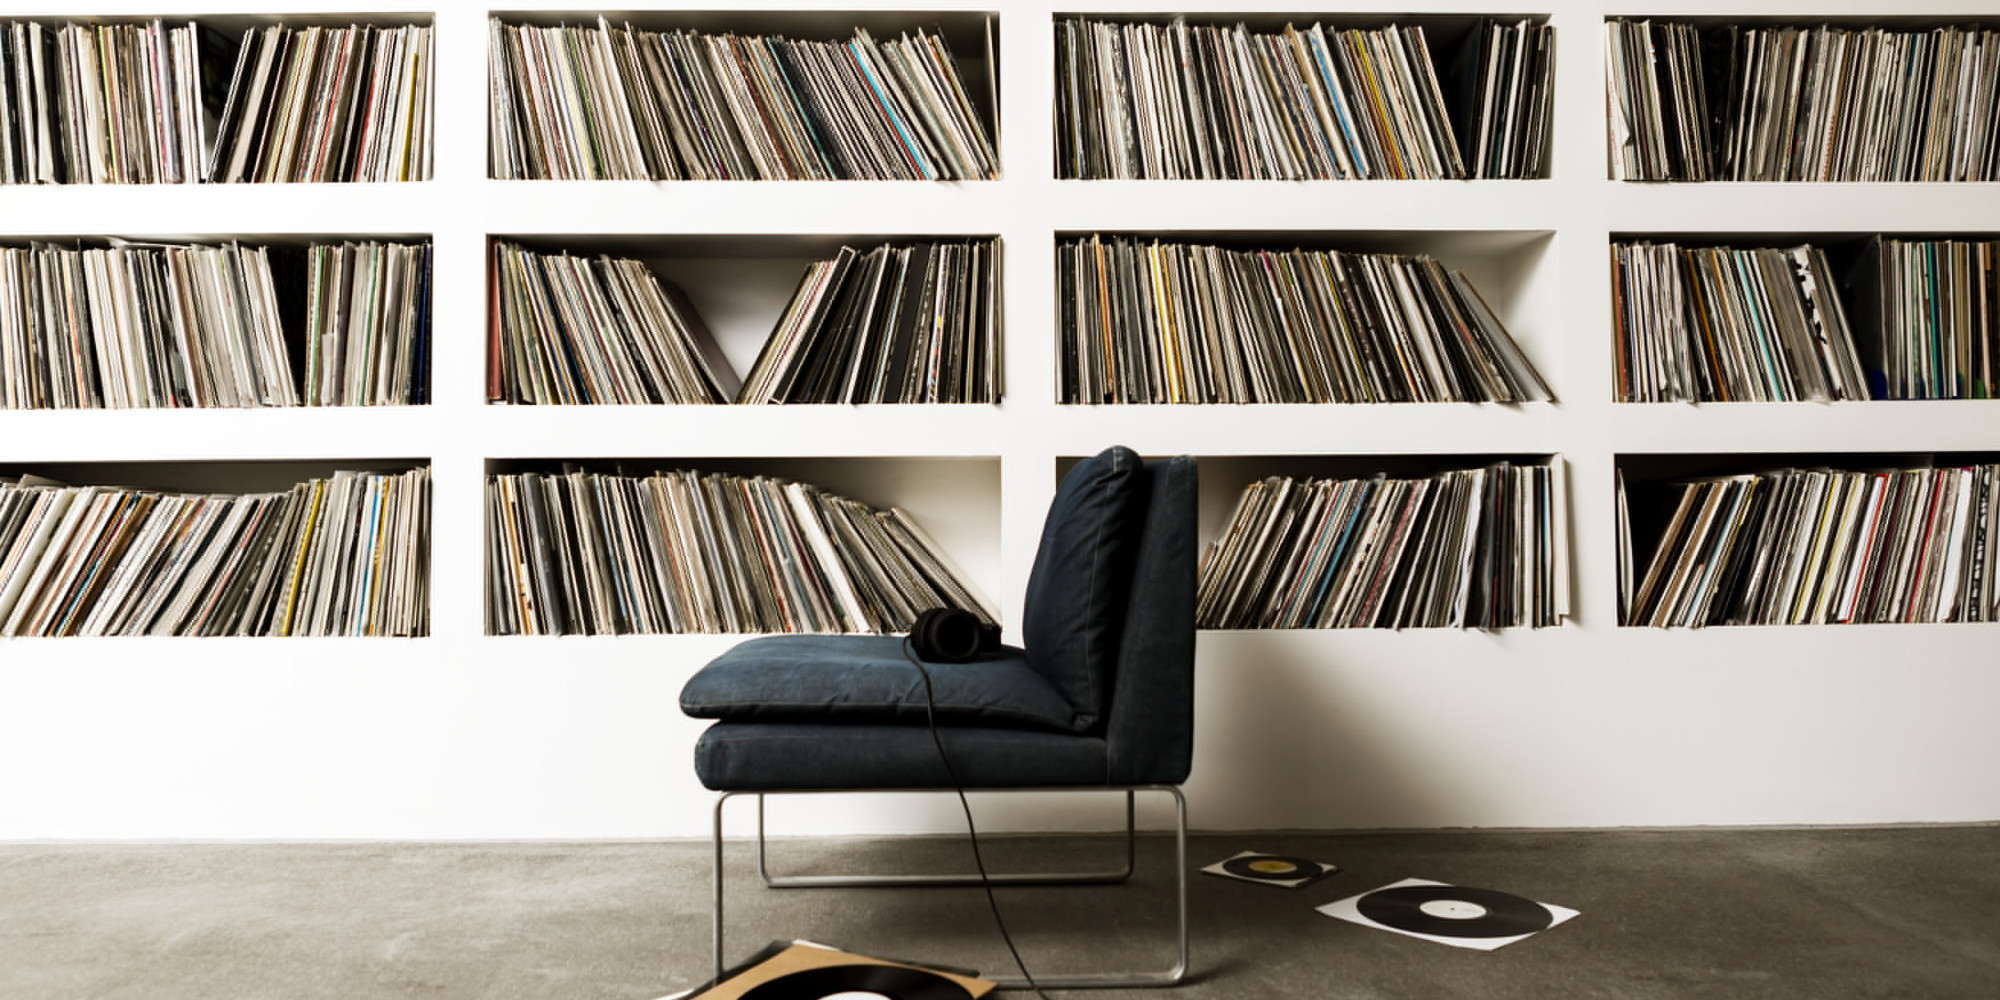 Ten Artists Vinyl Collections That Will Make You Drool 6am